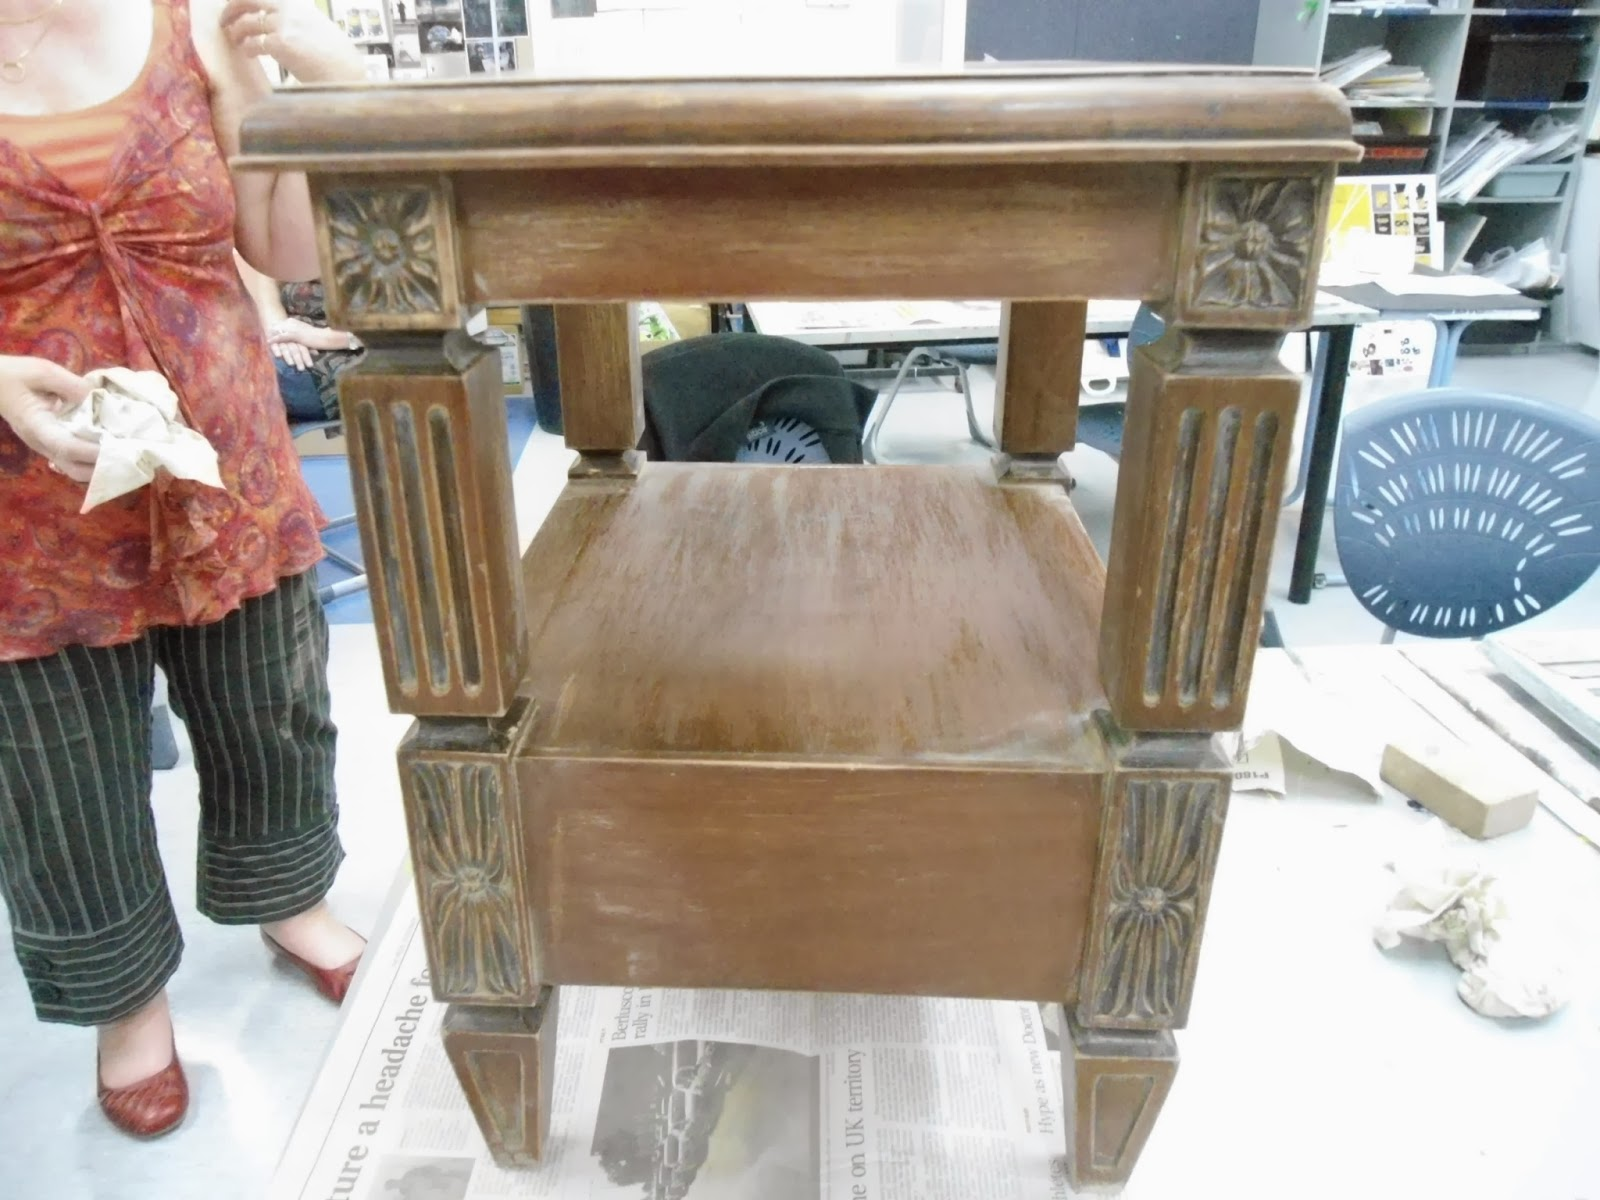 Marijke Everythings Arty The Next Shabby Chic Course Distressing Furniture